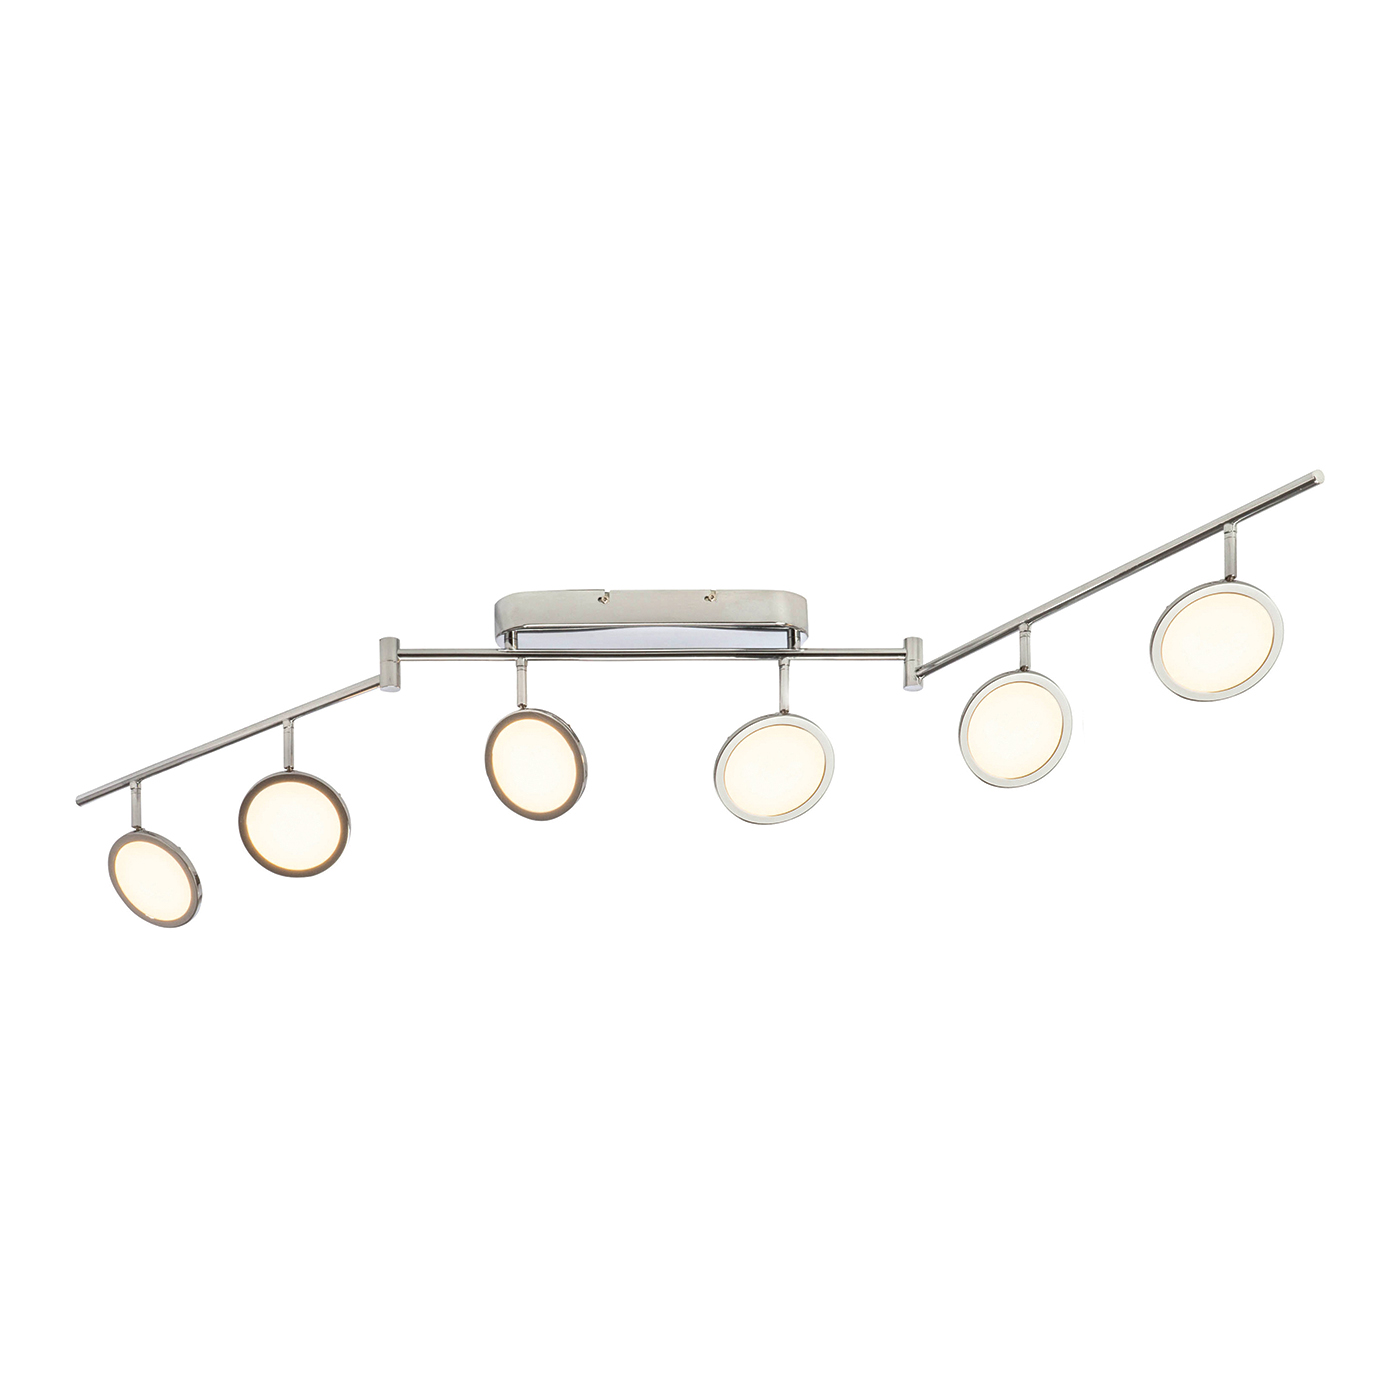 Endon Pluto ceiling spotlight folding bar 6x 5W Chrome effect plate opal plastic